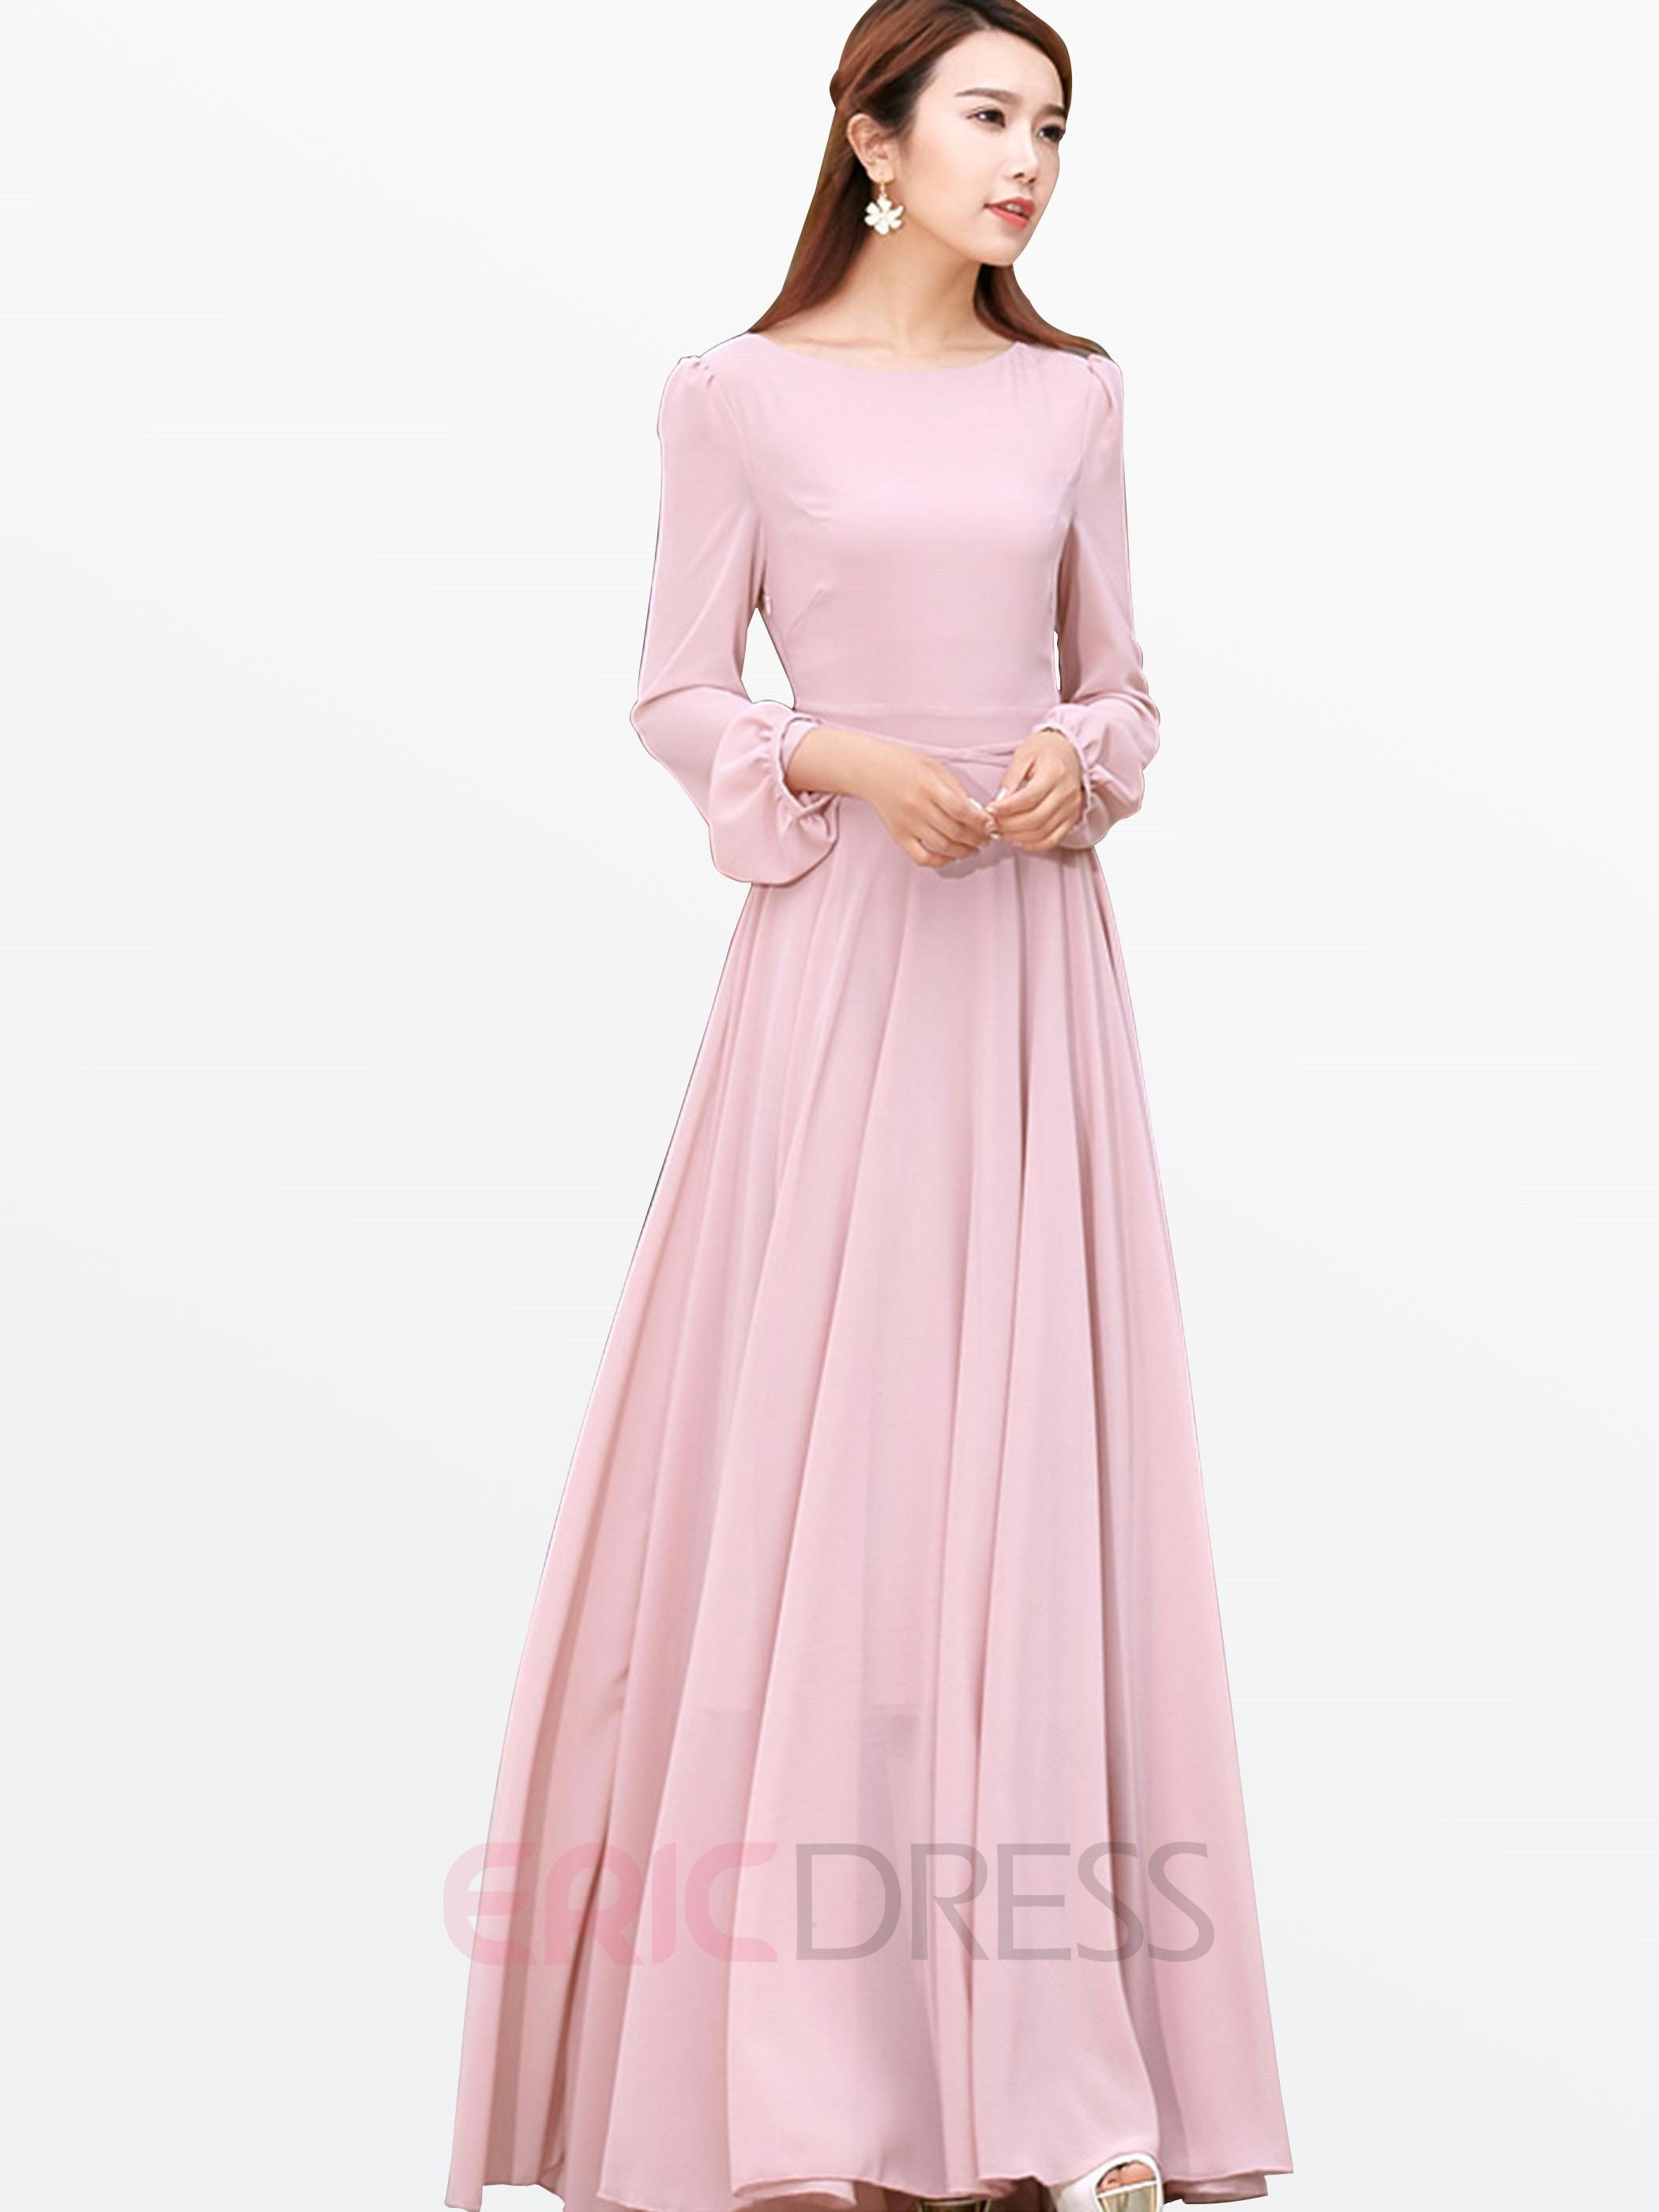 Ladylike solid color long sleeve maxi dress in trajes